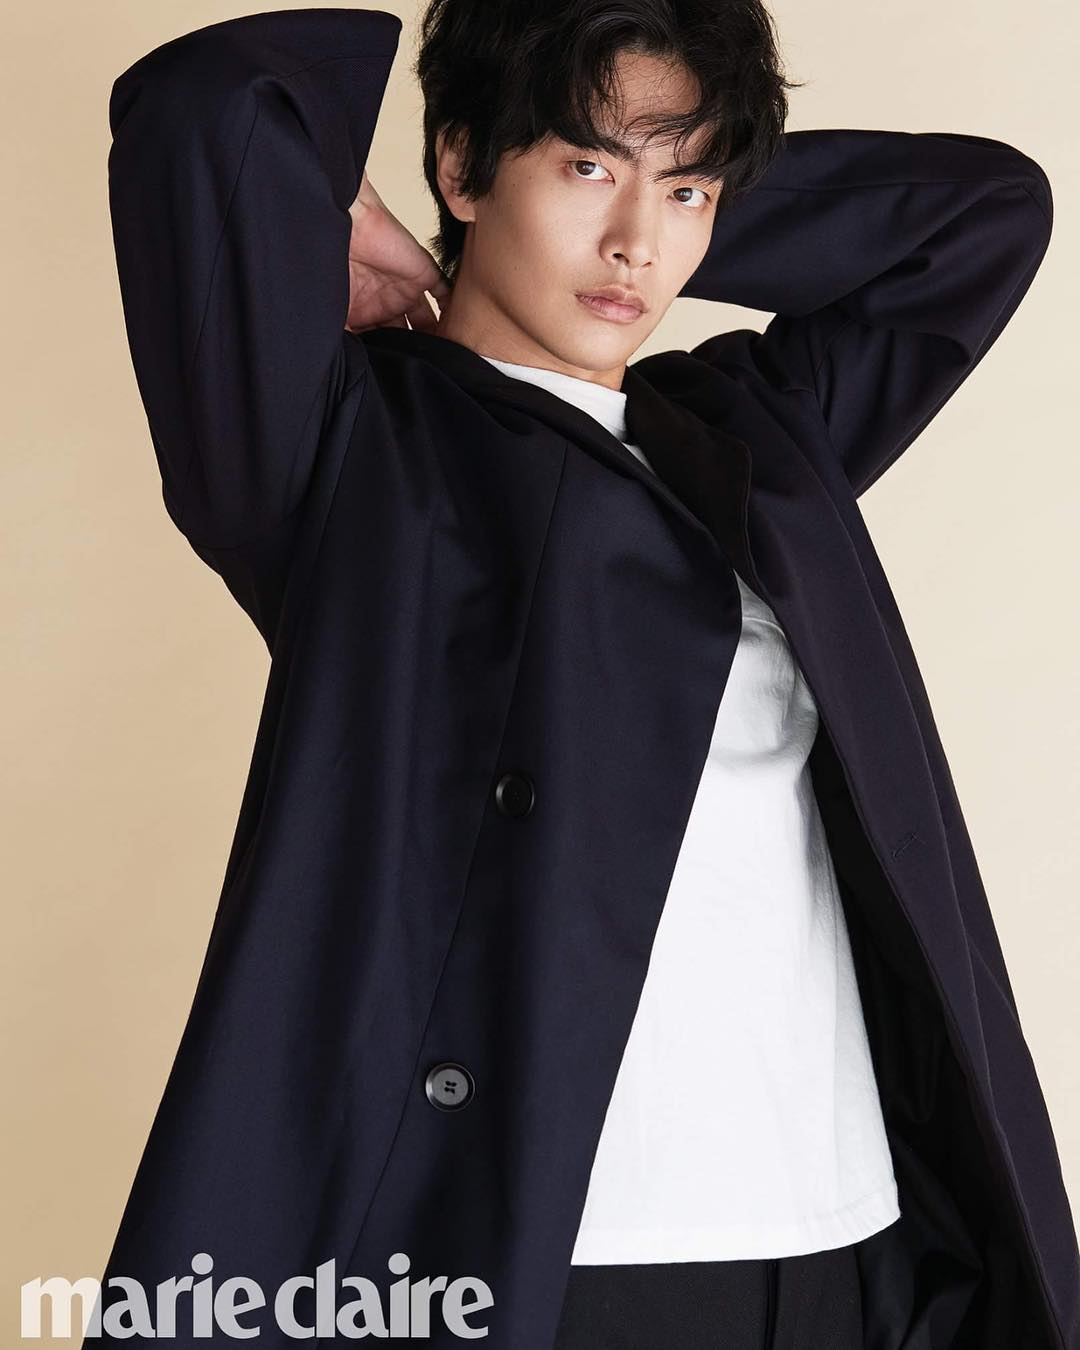 Image result for lee min ki model